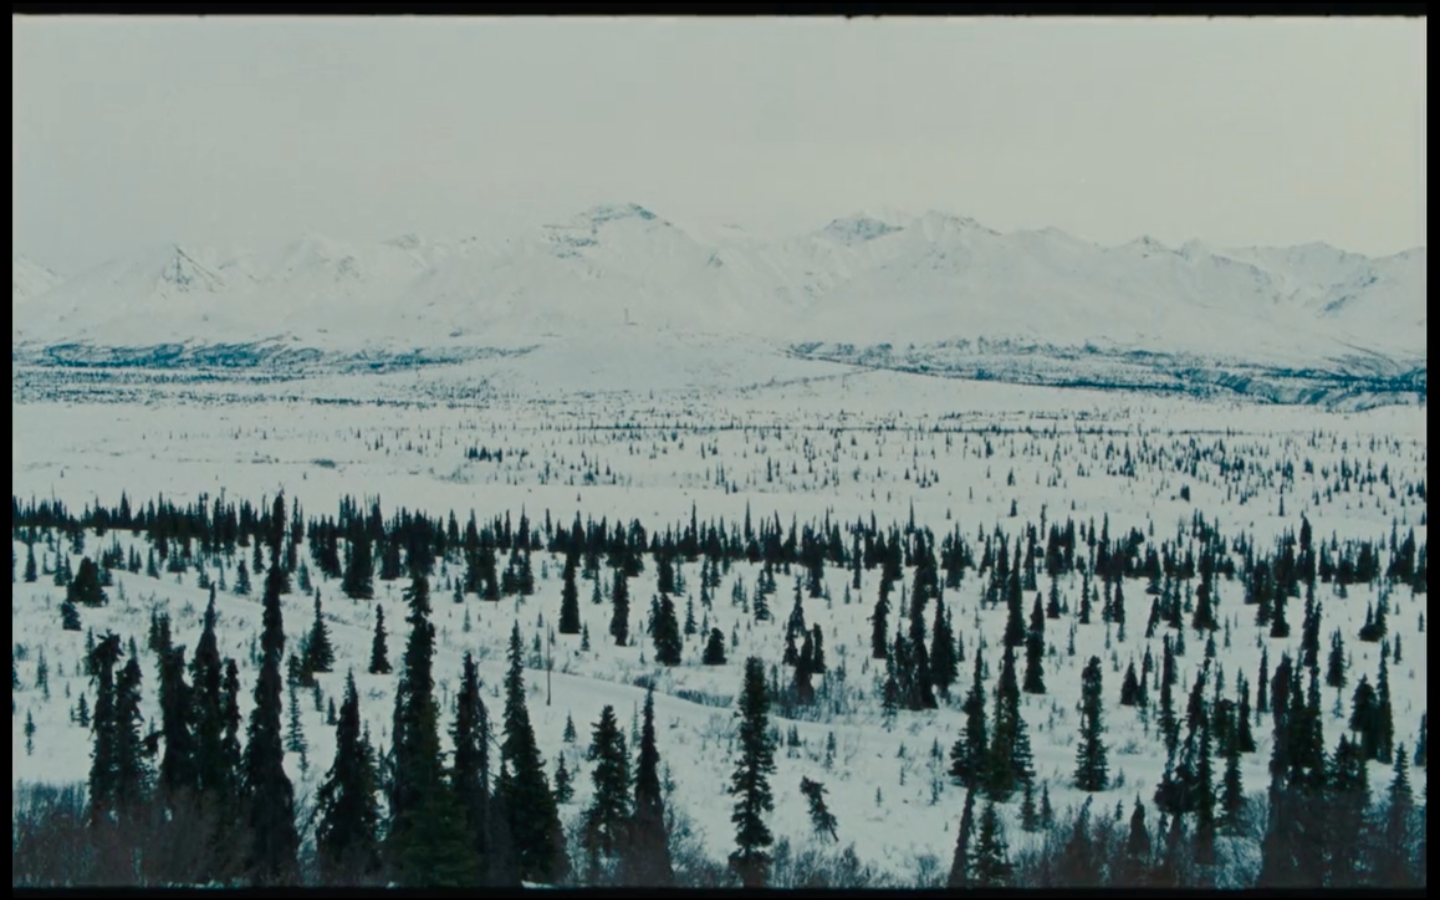 Alaska - To The Right short film by Janssen Powers